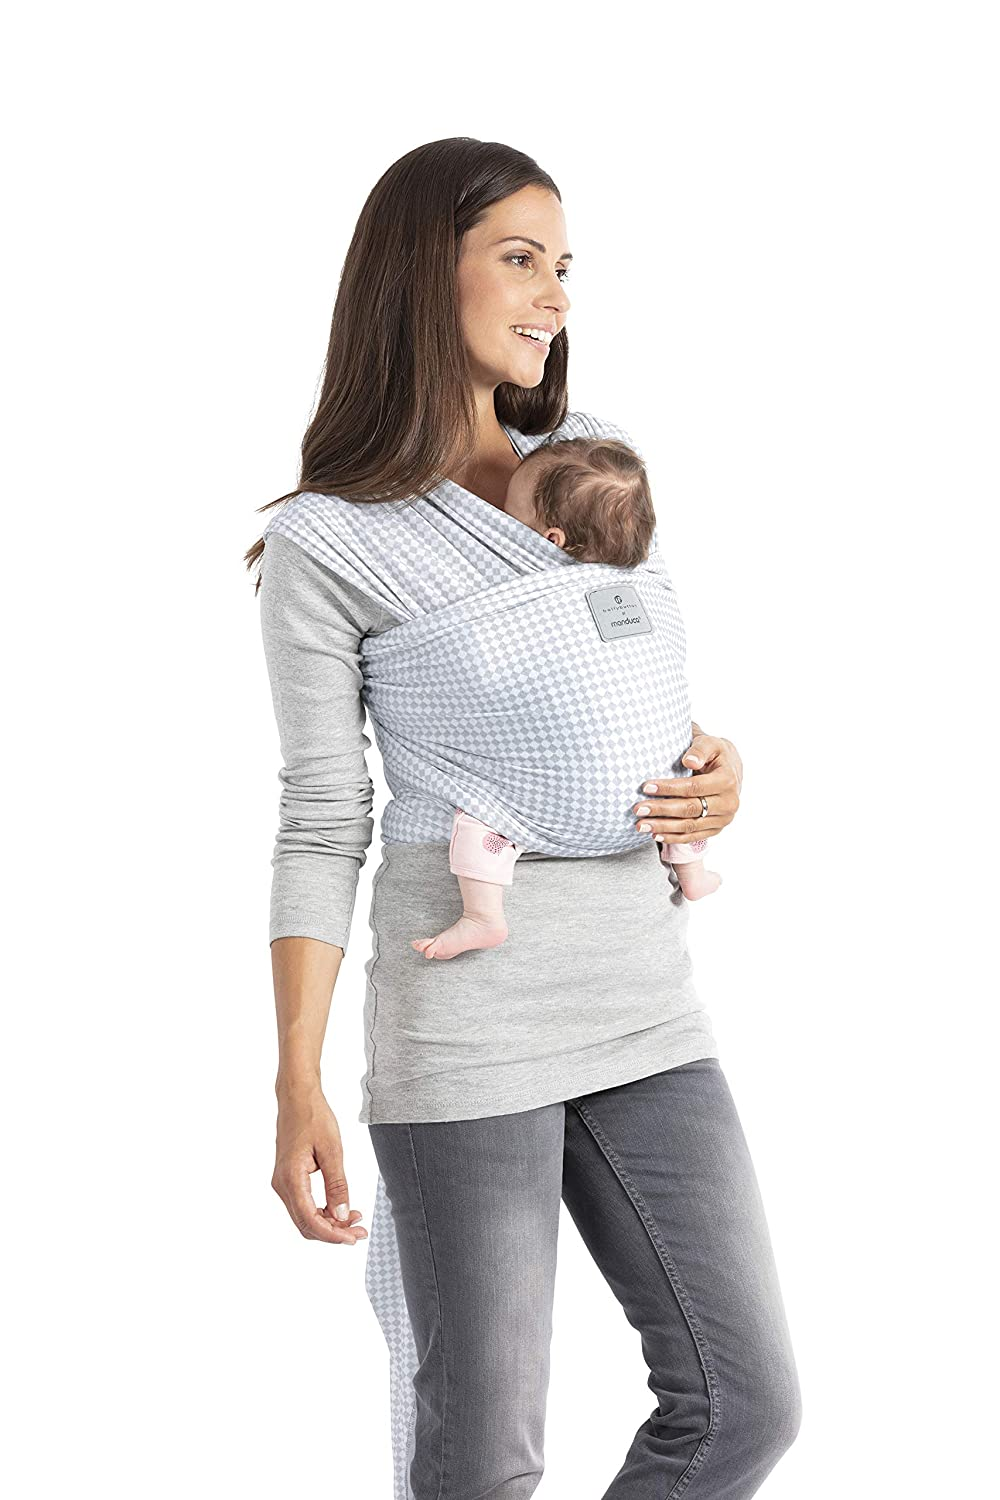 Lightgrey, 5,10m x 0,60m manduca Sling  Stretchy Baby Wrap /& Baby Carrier  GOTS Organic Certified Cotton Baby Product Suitable for Newborns /& Infants from Birth up to 15kg